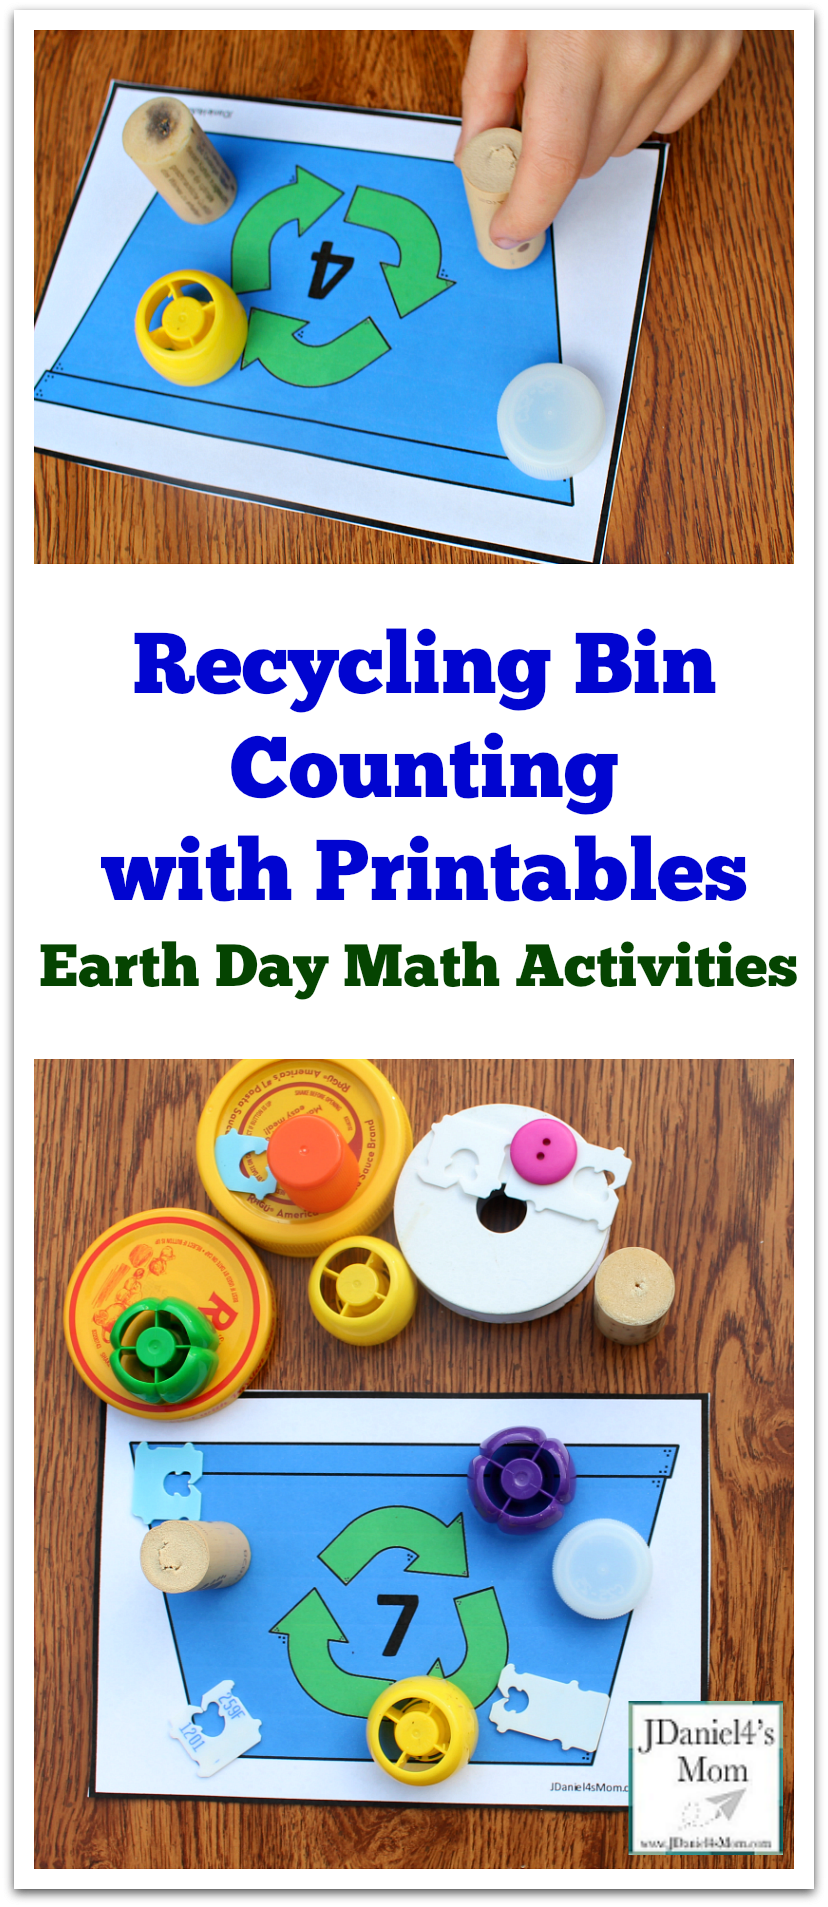 Earth Day Math Activities -Recycling Bin Counting with Printables : Kids will love exploring numbers with small counters.